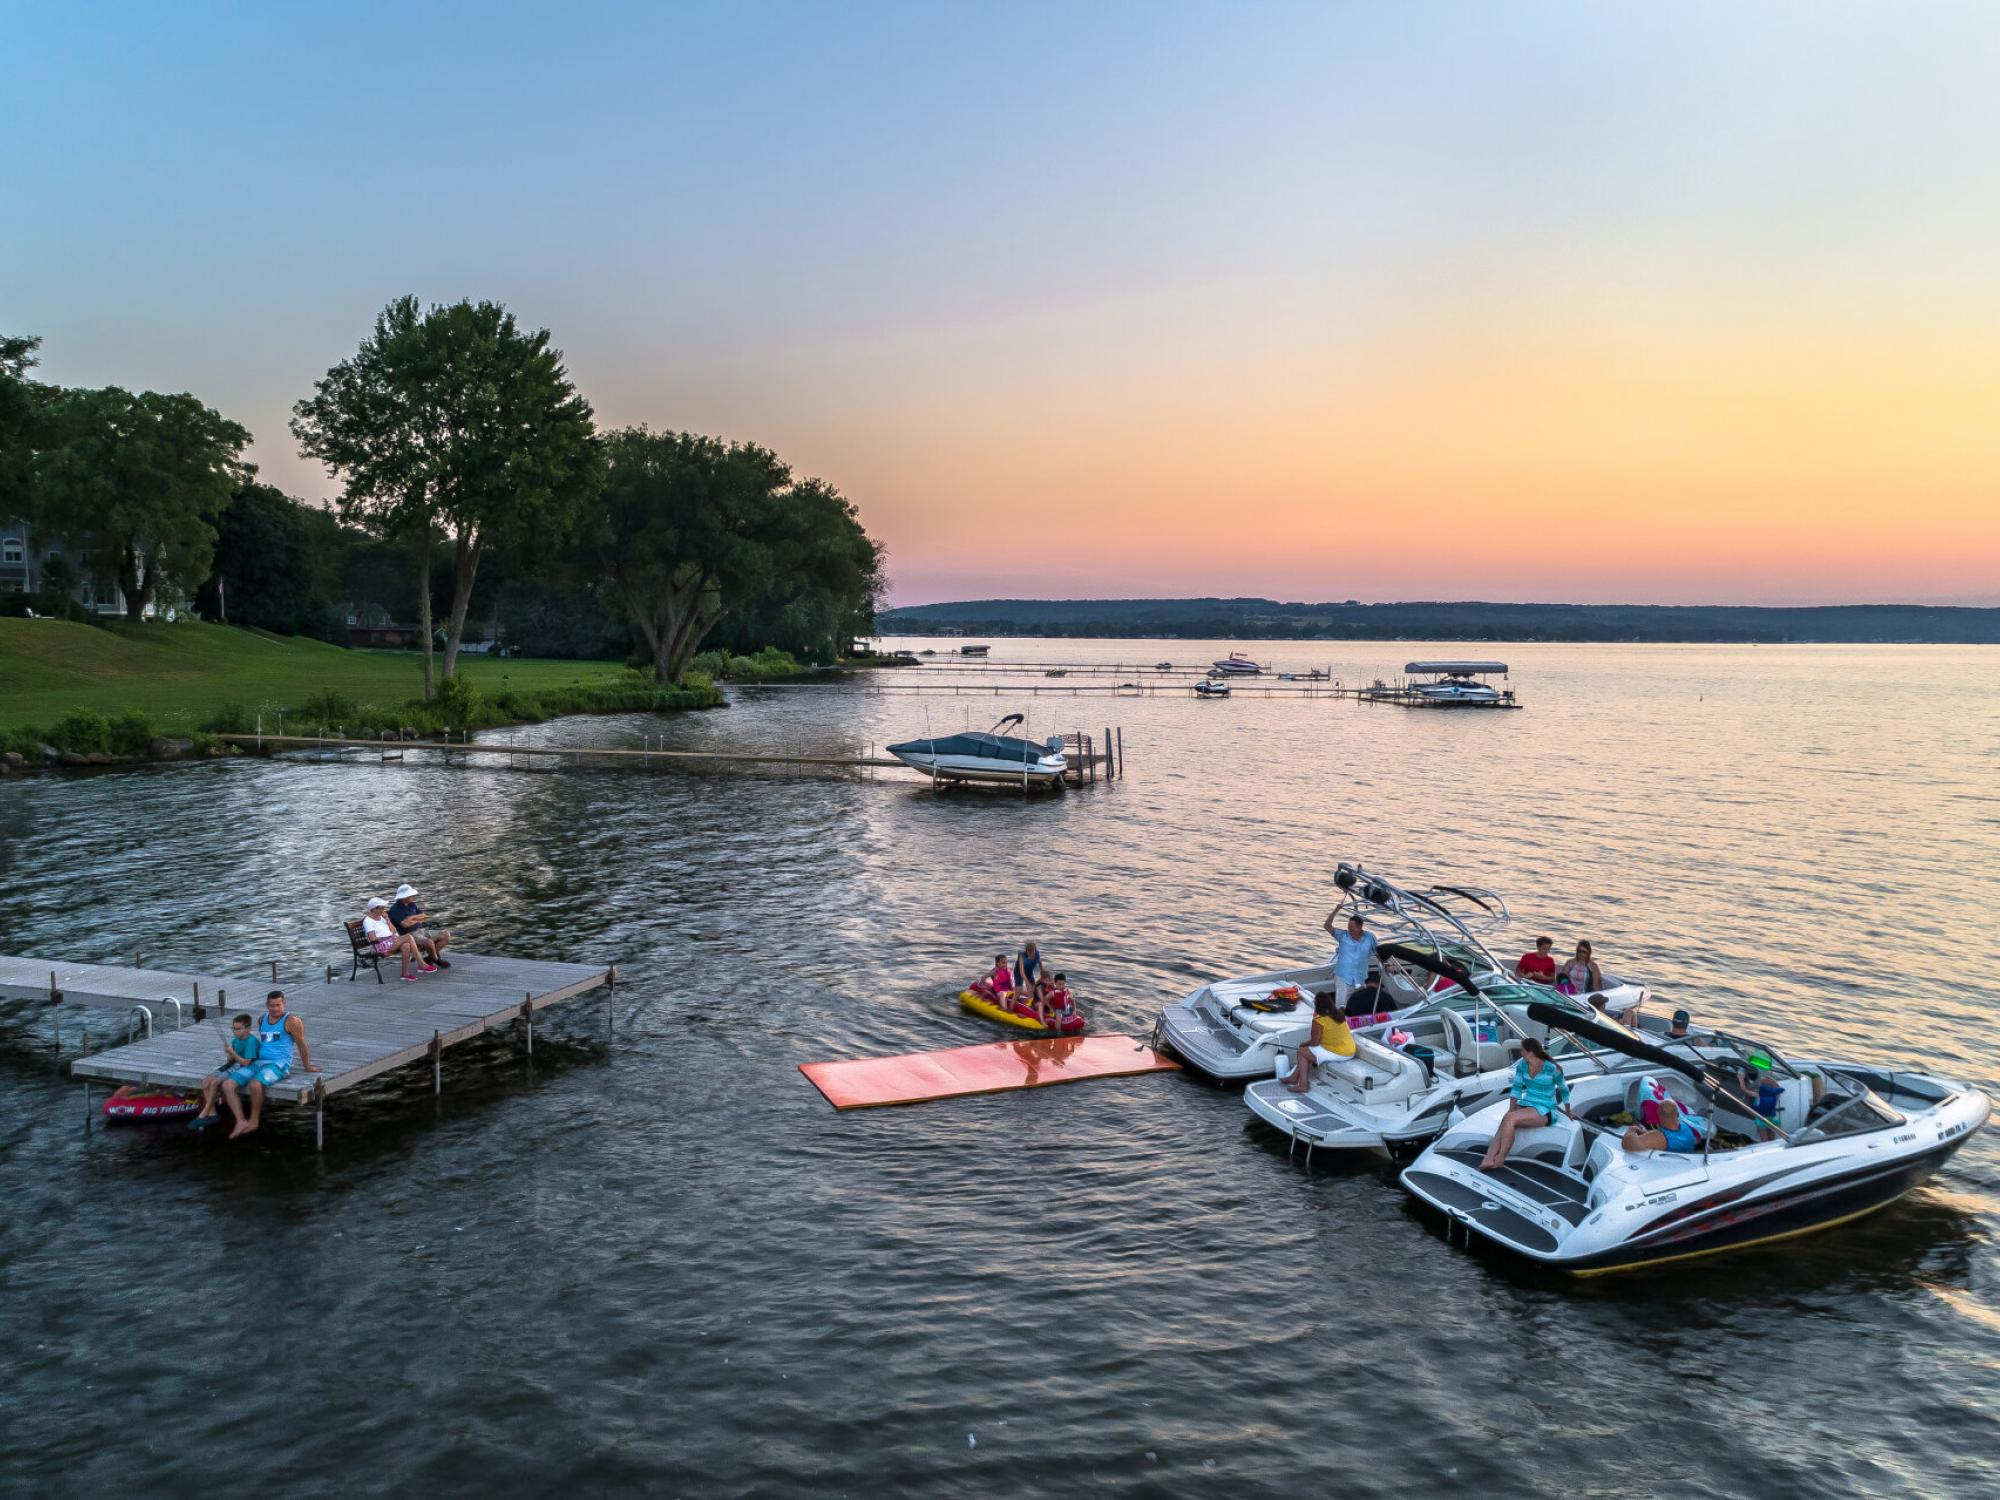 Banner image of Chautauqua Lake on a beautiful day